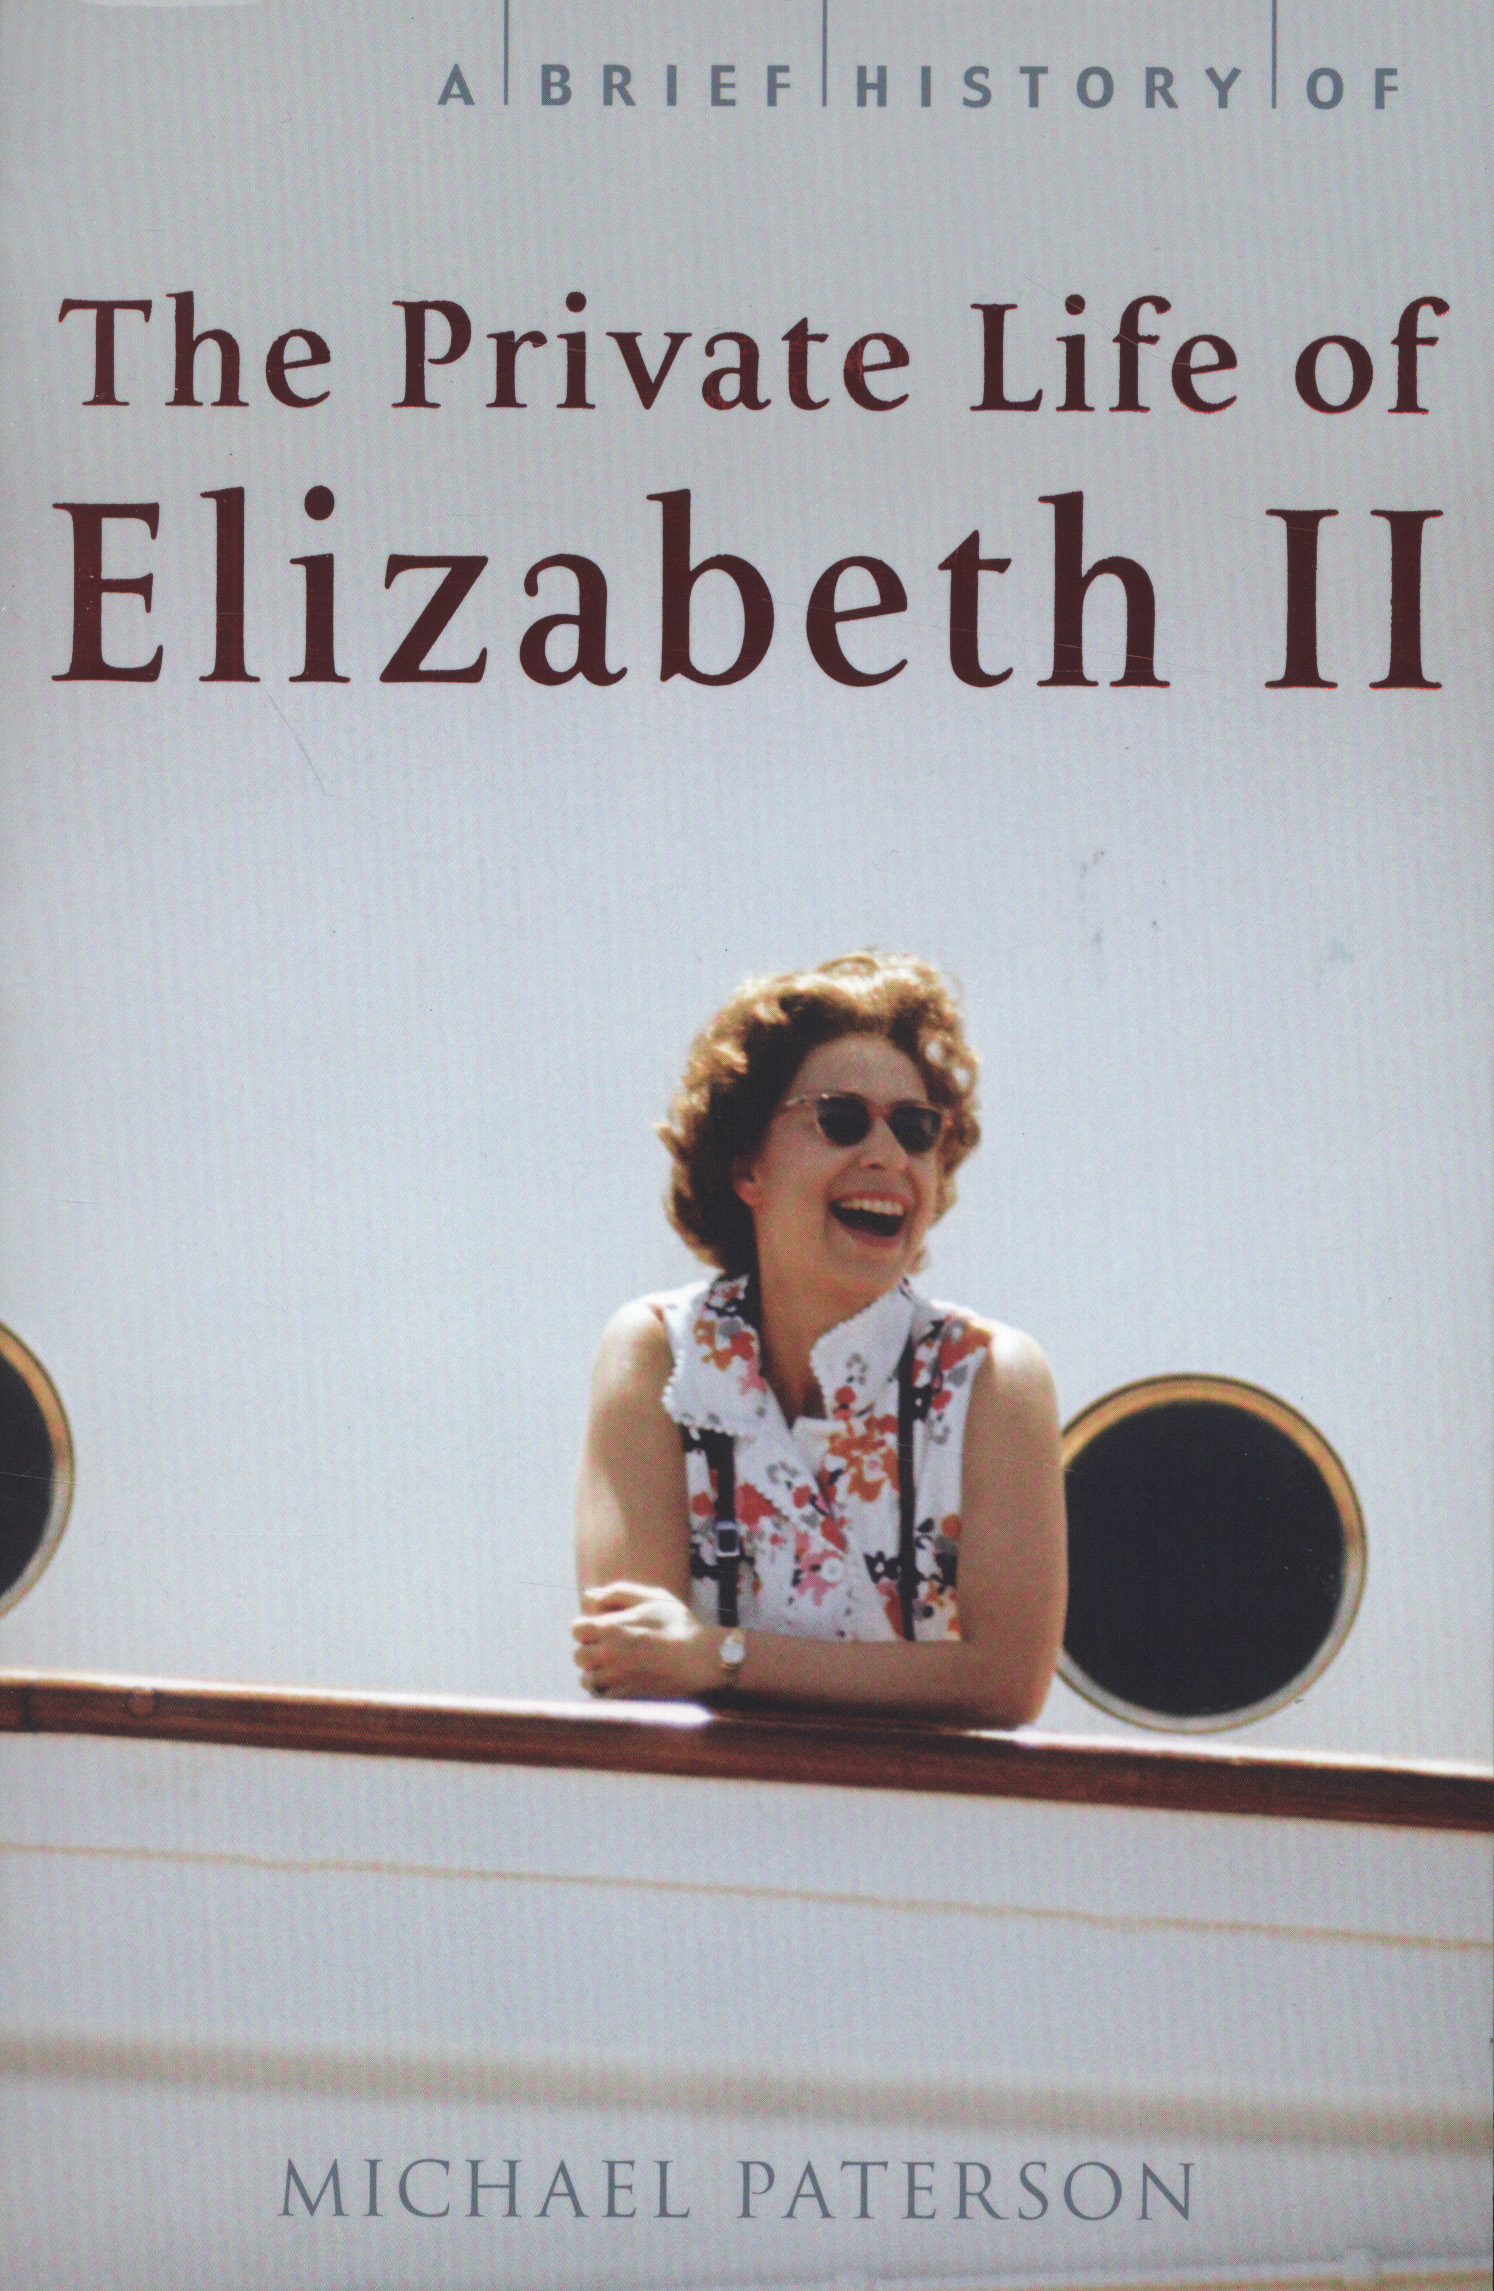 A Brief History of the Private Life of Elizabeth II